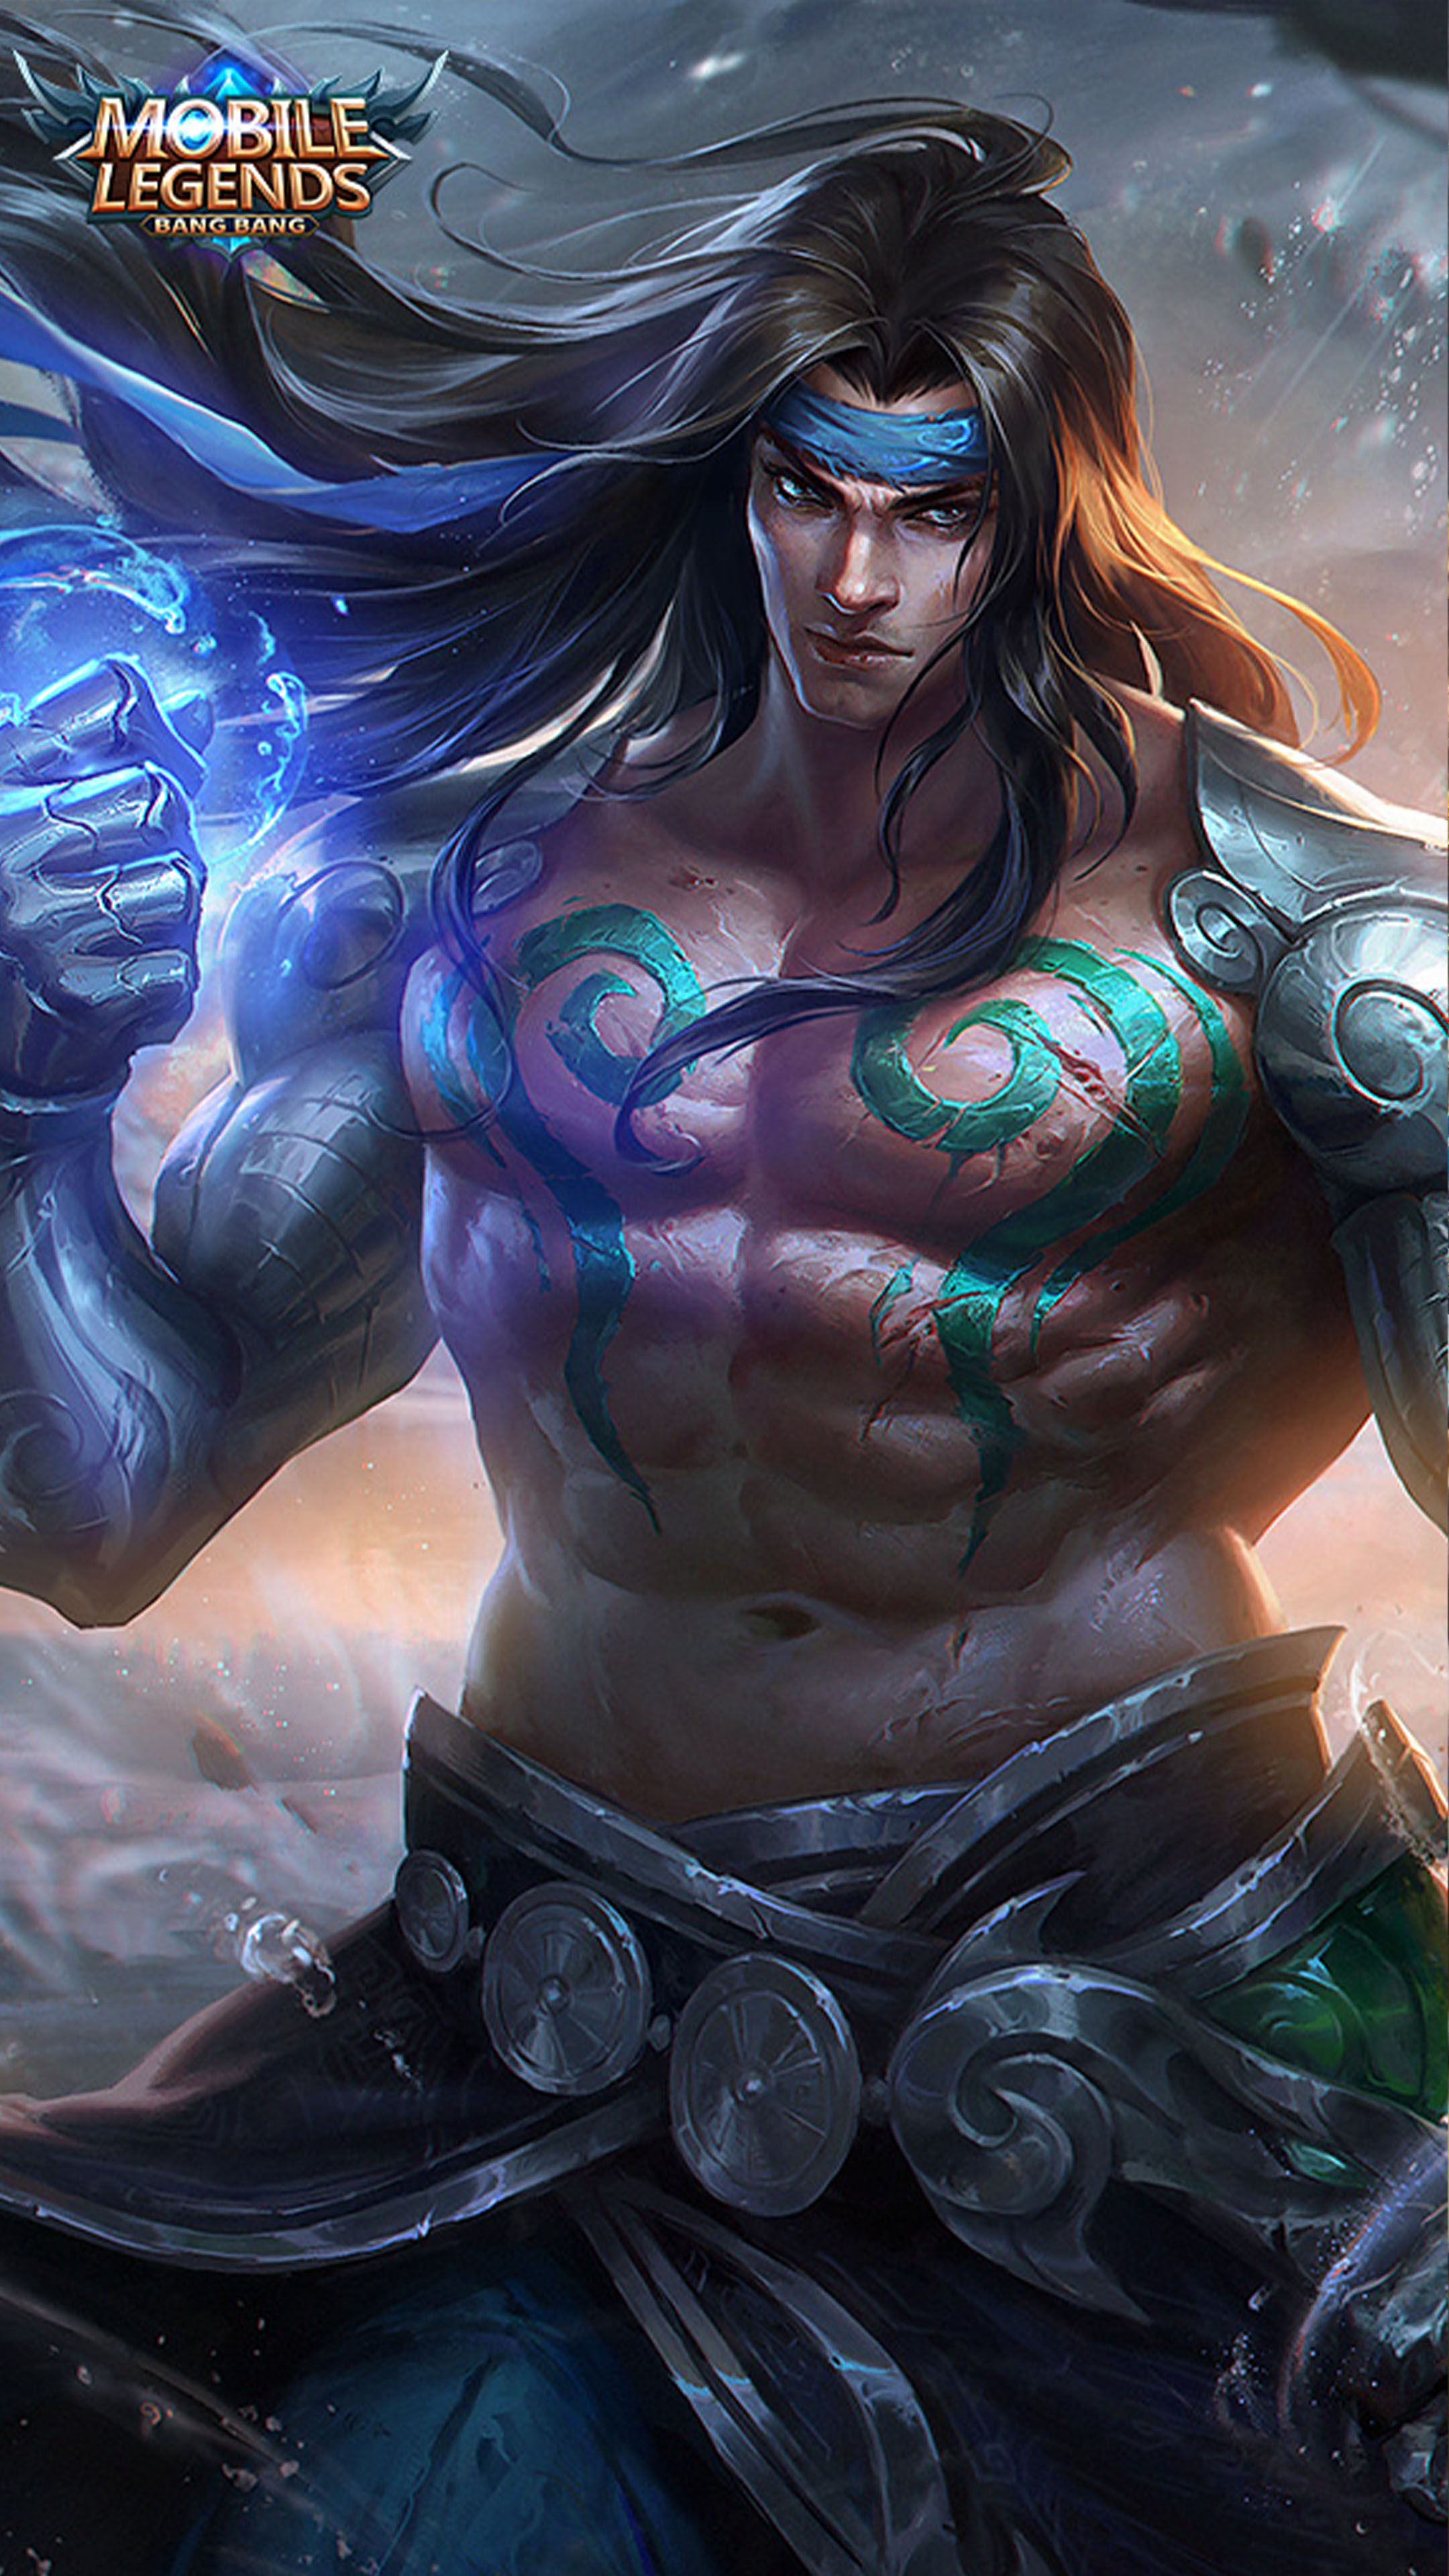 Badang Mobile Legends Wallpaper Hd HD Wallpaper